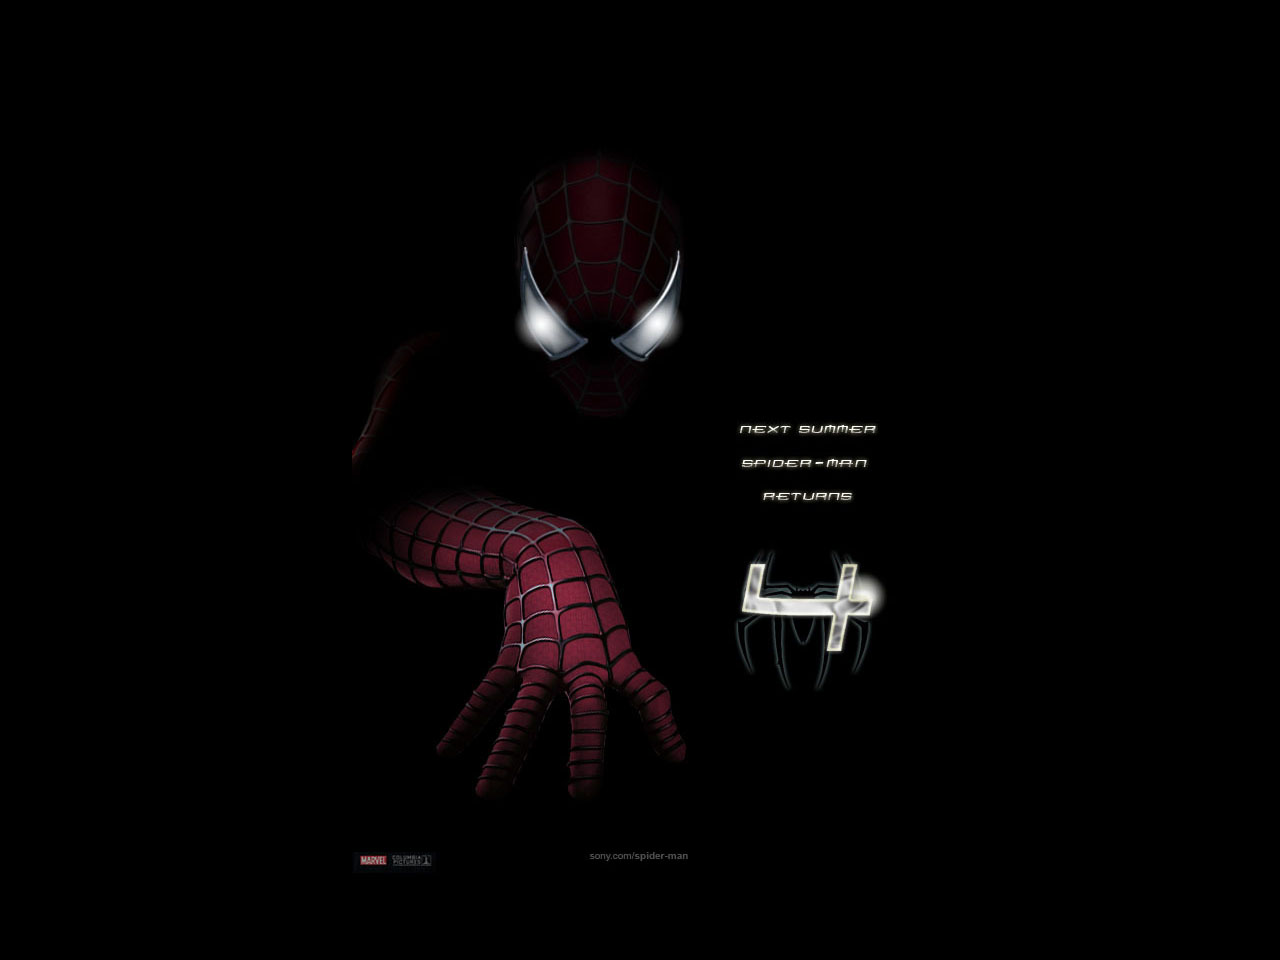 wallpapers Hollywood movies wallpapers The Amazing Spider Man hd 1280x960